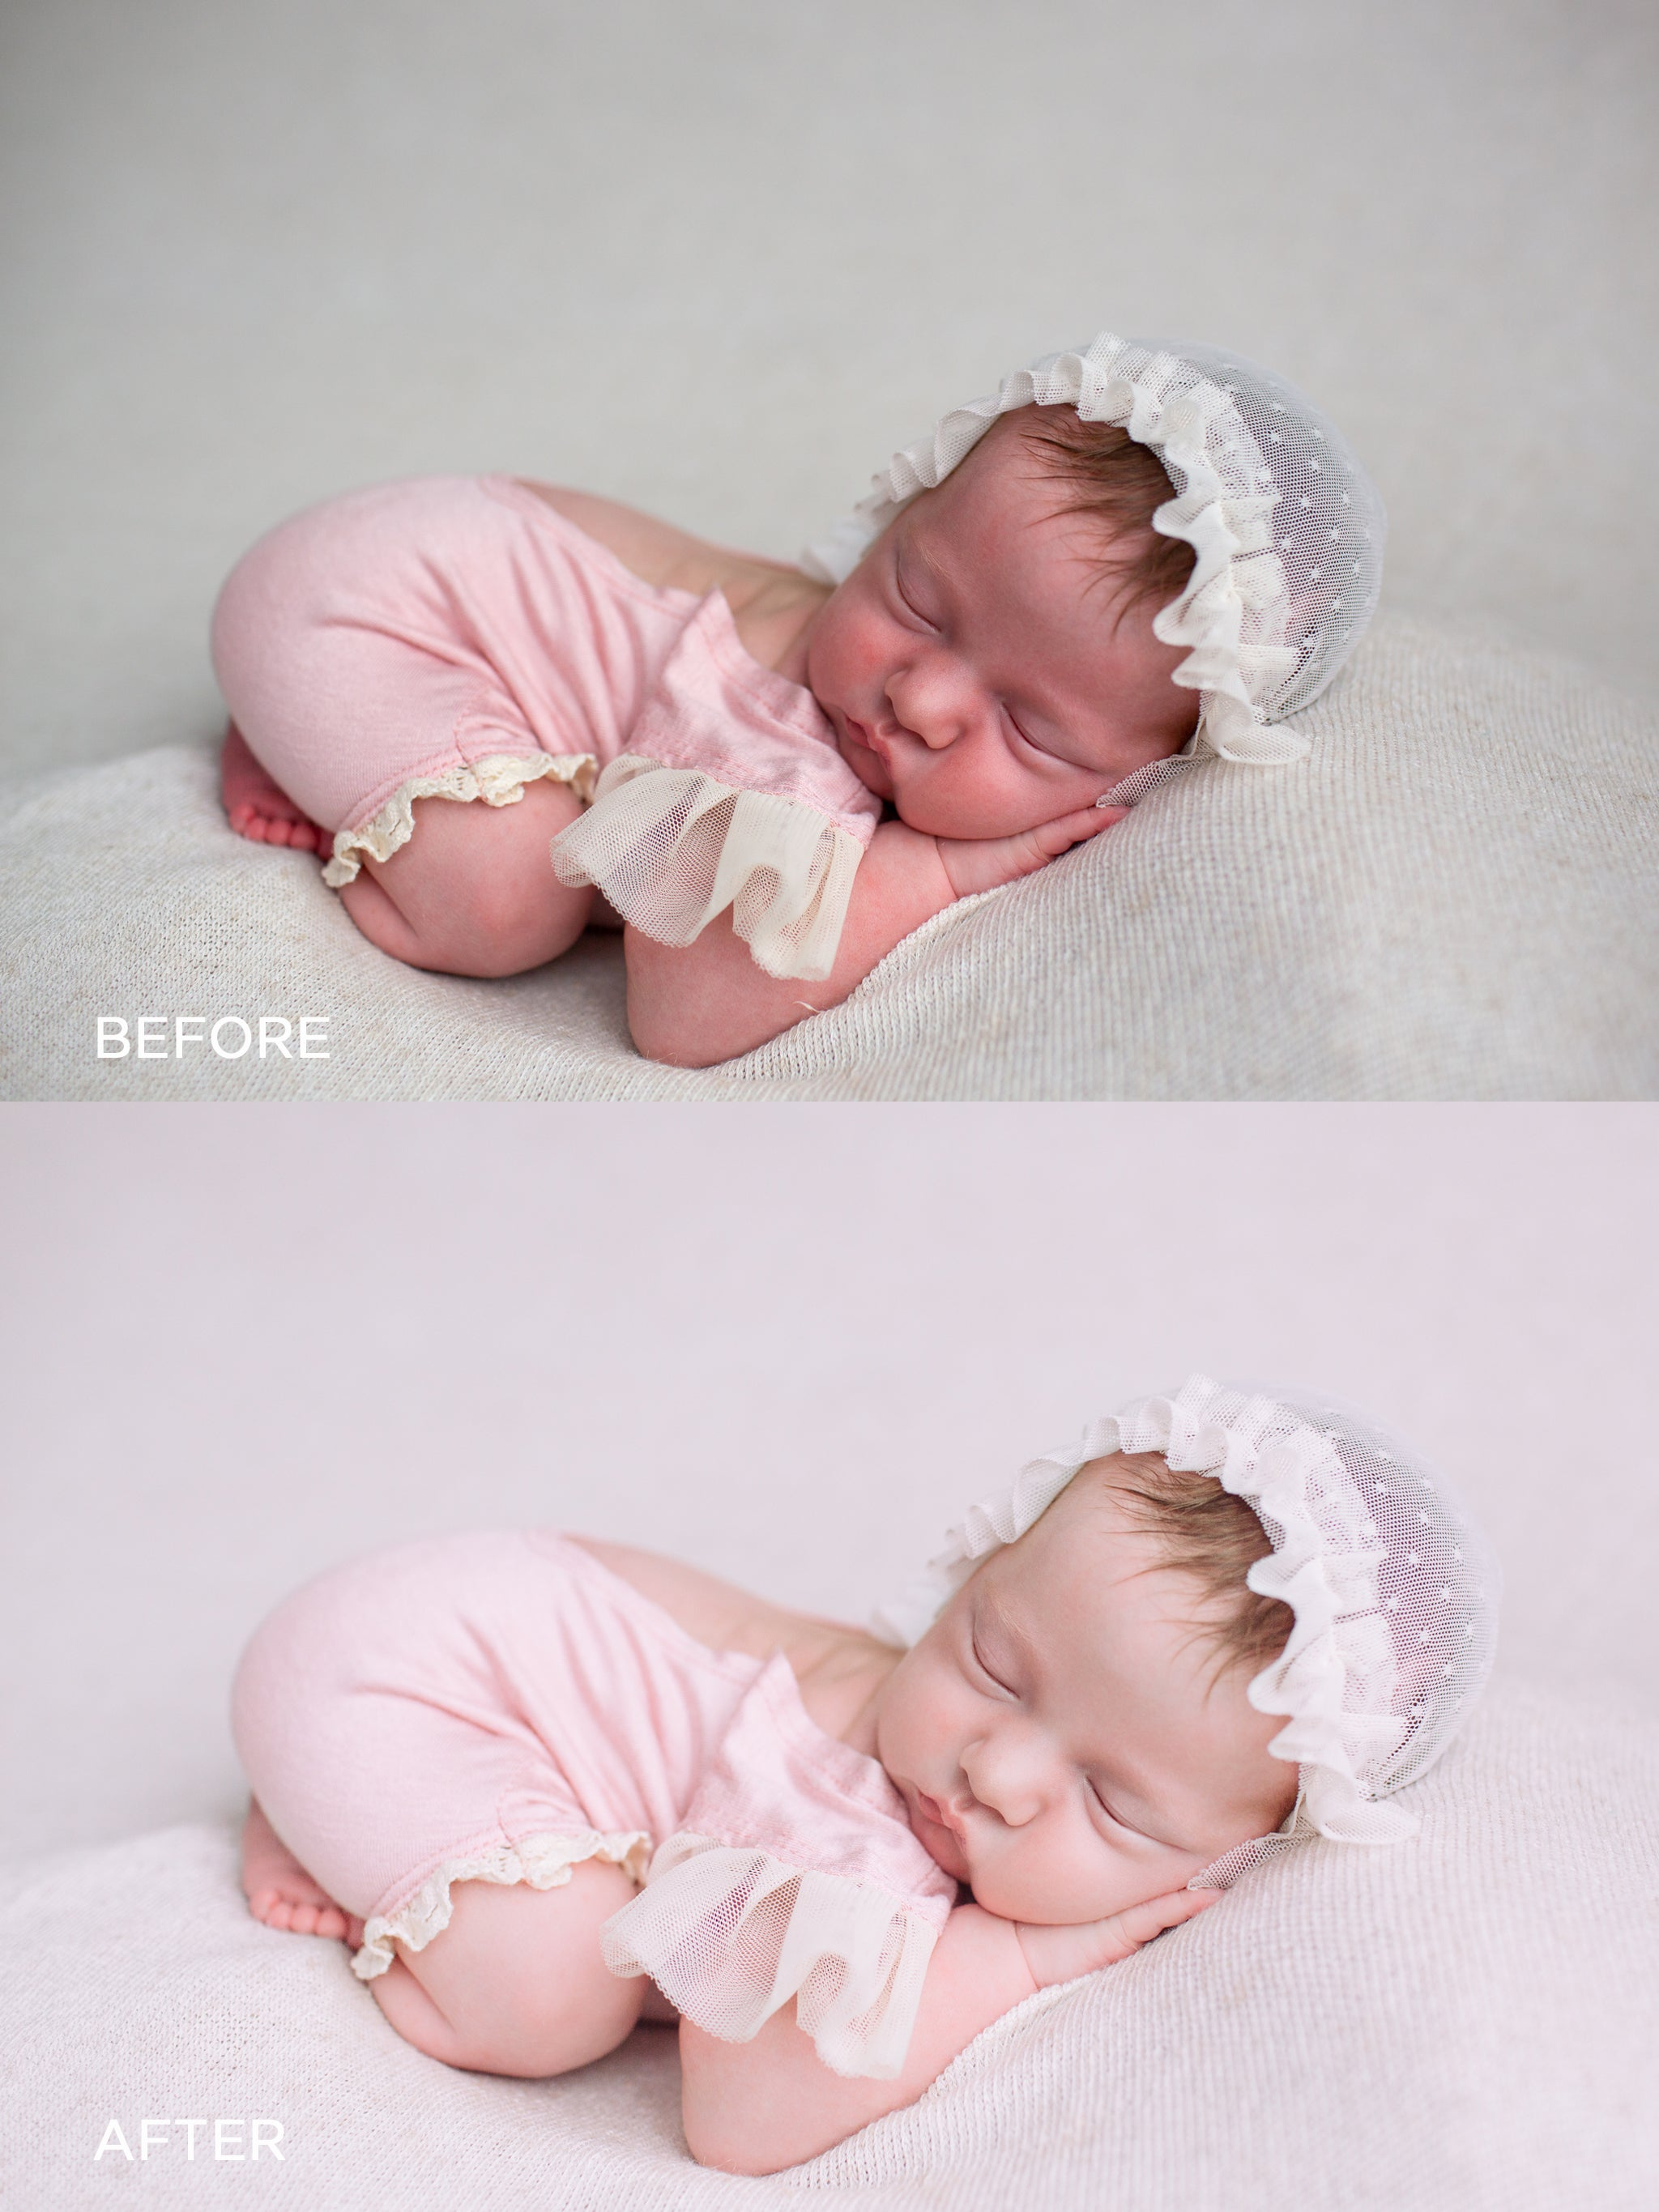 Editing newborns photos in lightroom